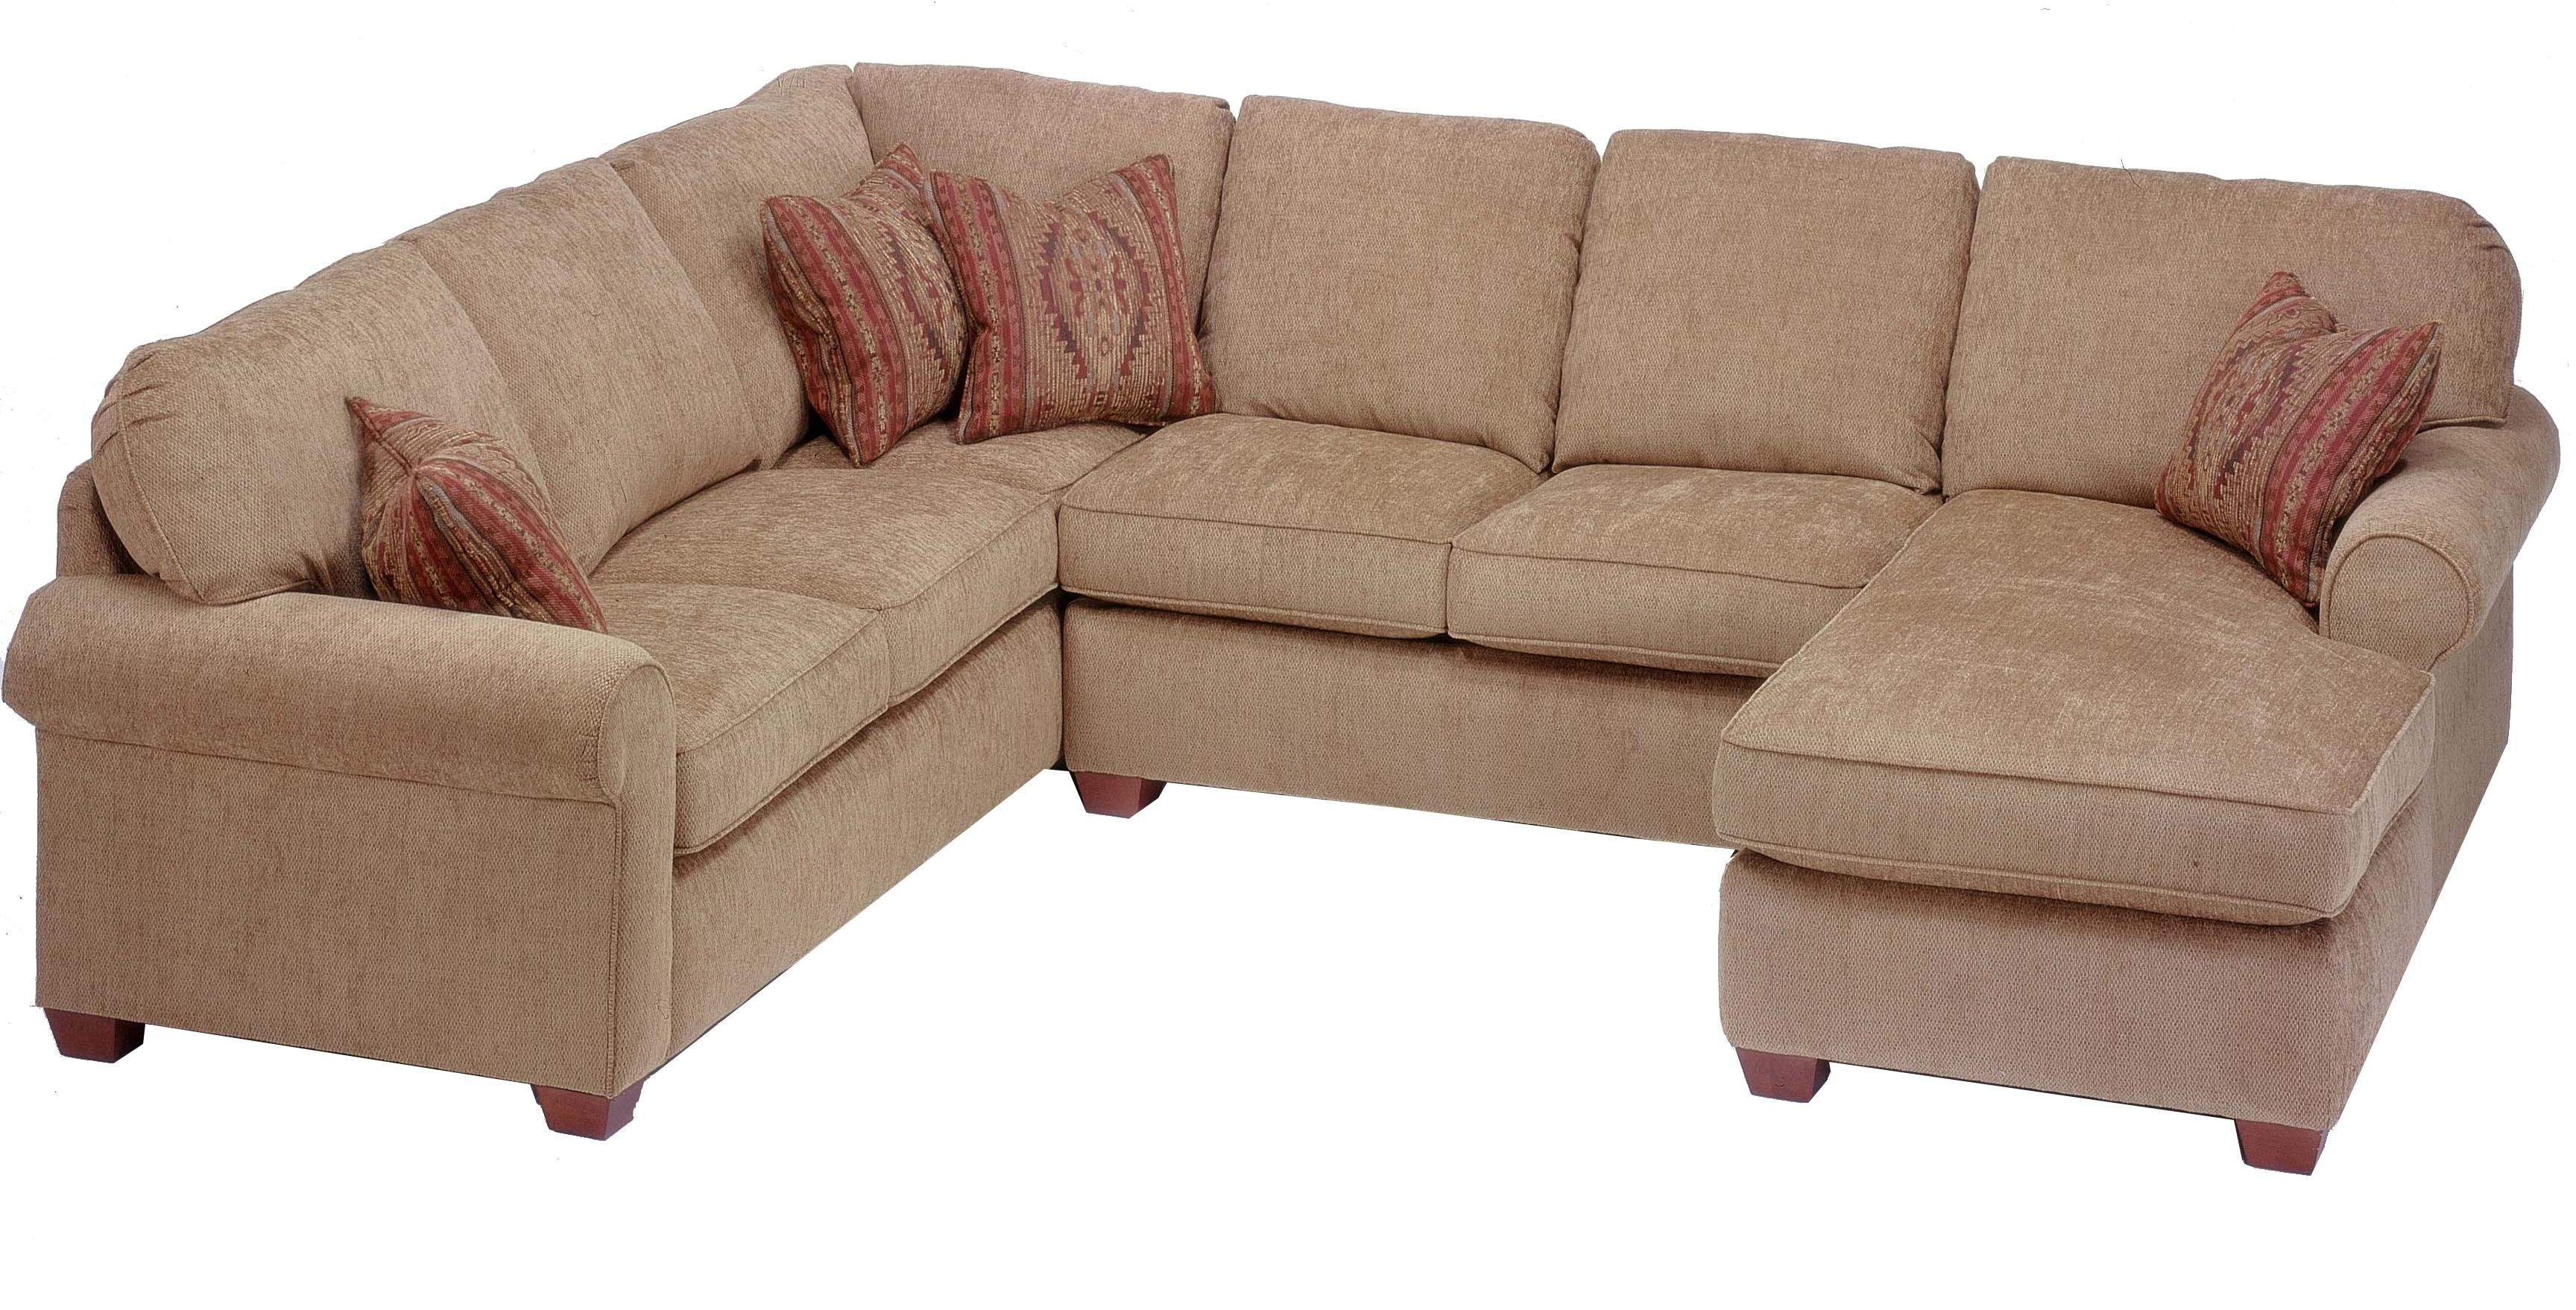 Flexsteel Thornton 3 Piece Sectional With Chaise – Ahfa – Sofa Regarding Recent Gainesville Fl Sectional Sofas (View 3 of 20)